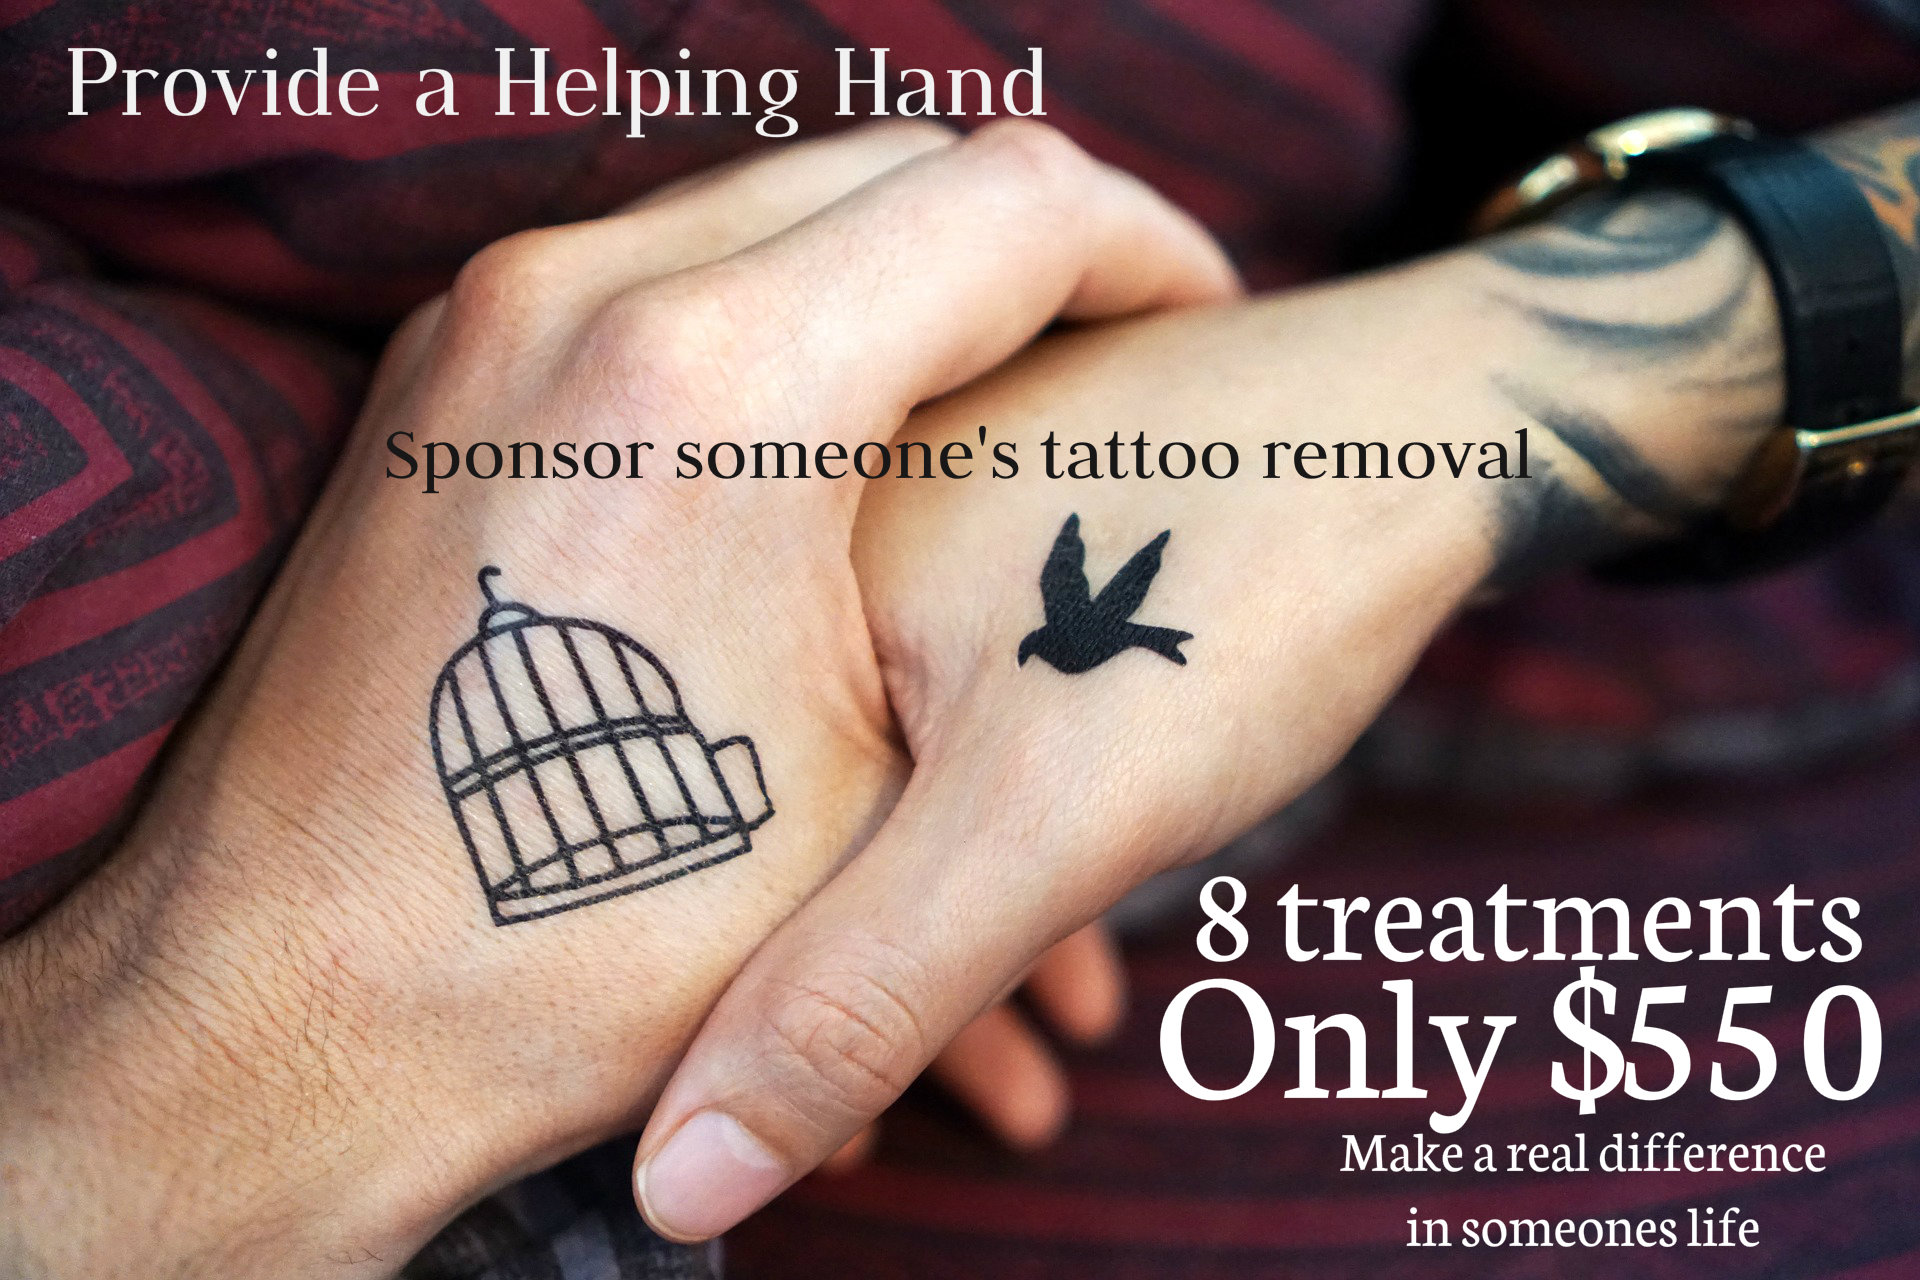 Sponsor tattoo removal